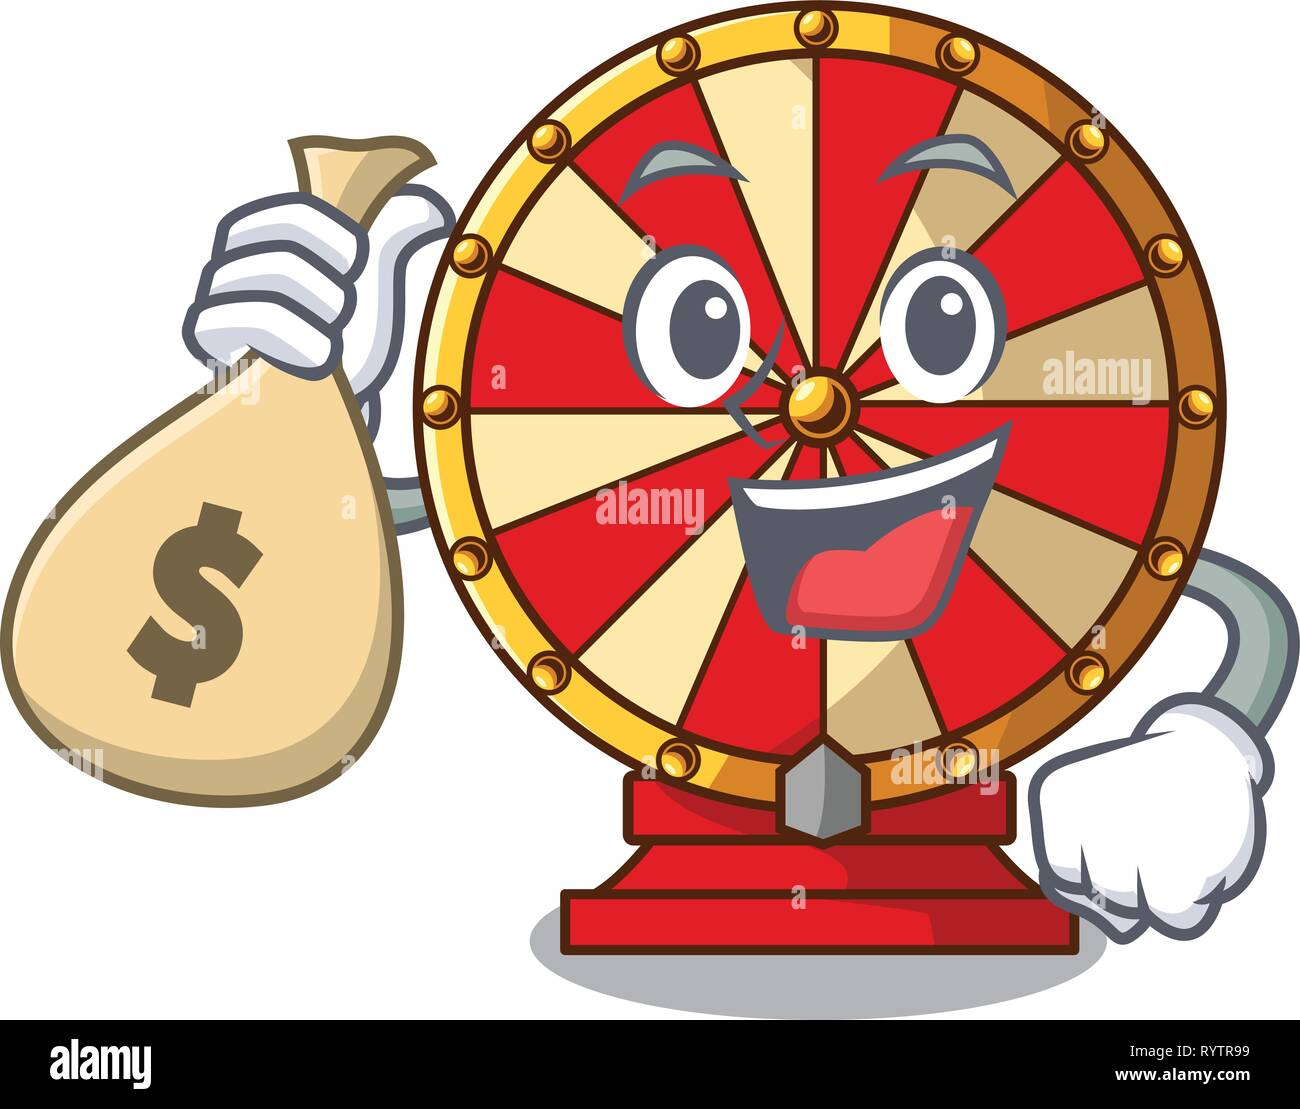 With Money Bag Spinning Wheel Game The Mascot Shape Stock Vector Image Art Alamy